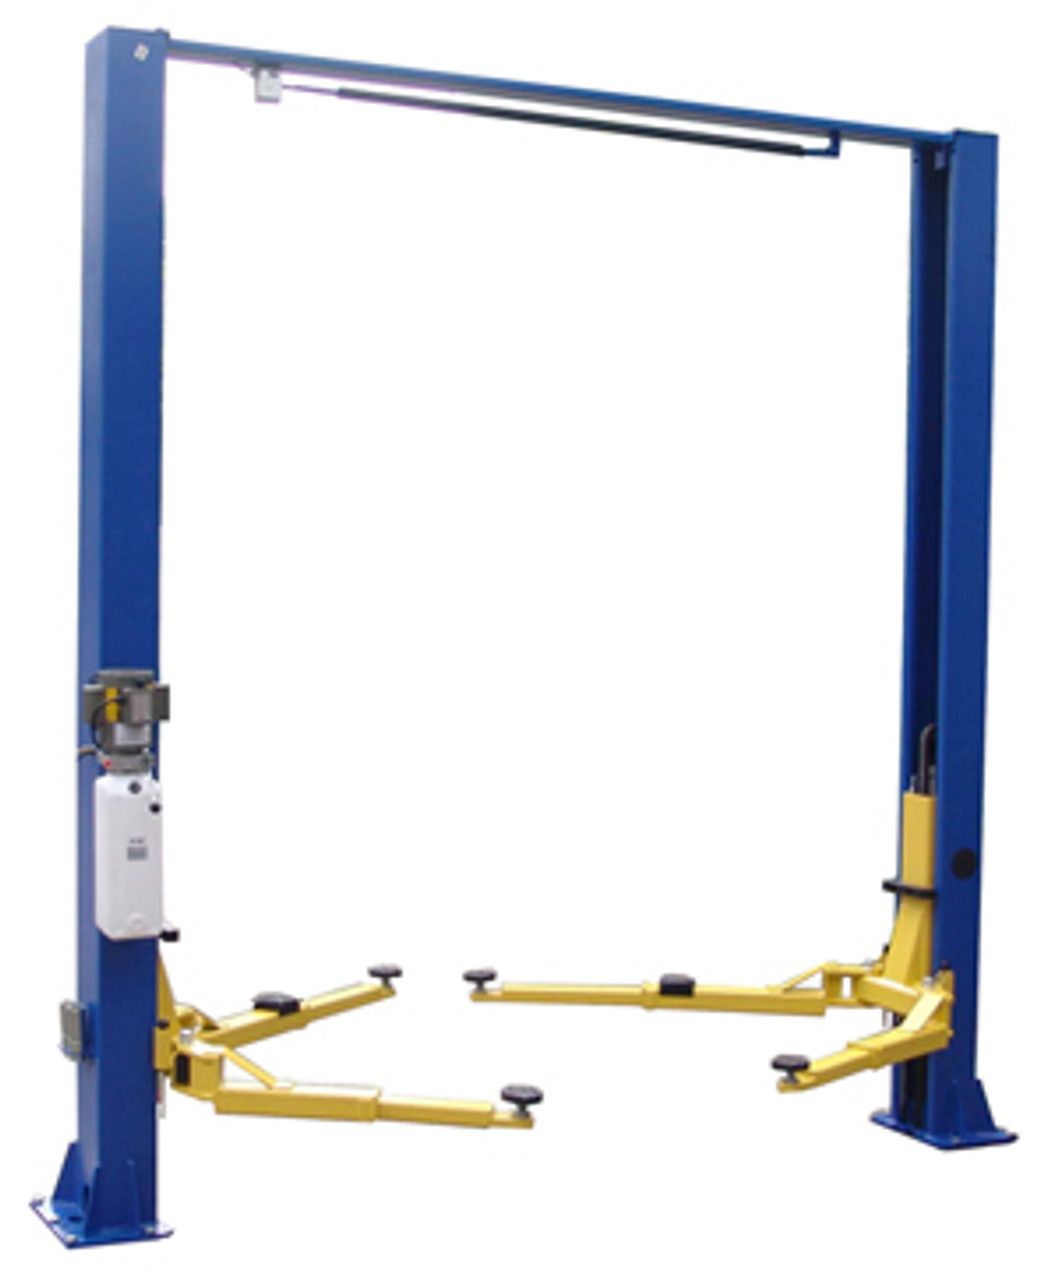 CARLIFT CL-2-9K-ACX 9,000 LB. ASYMMETRIC 2 POST CAR LIFT